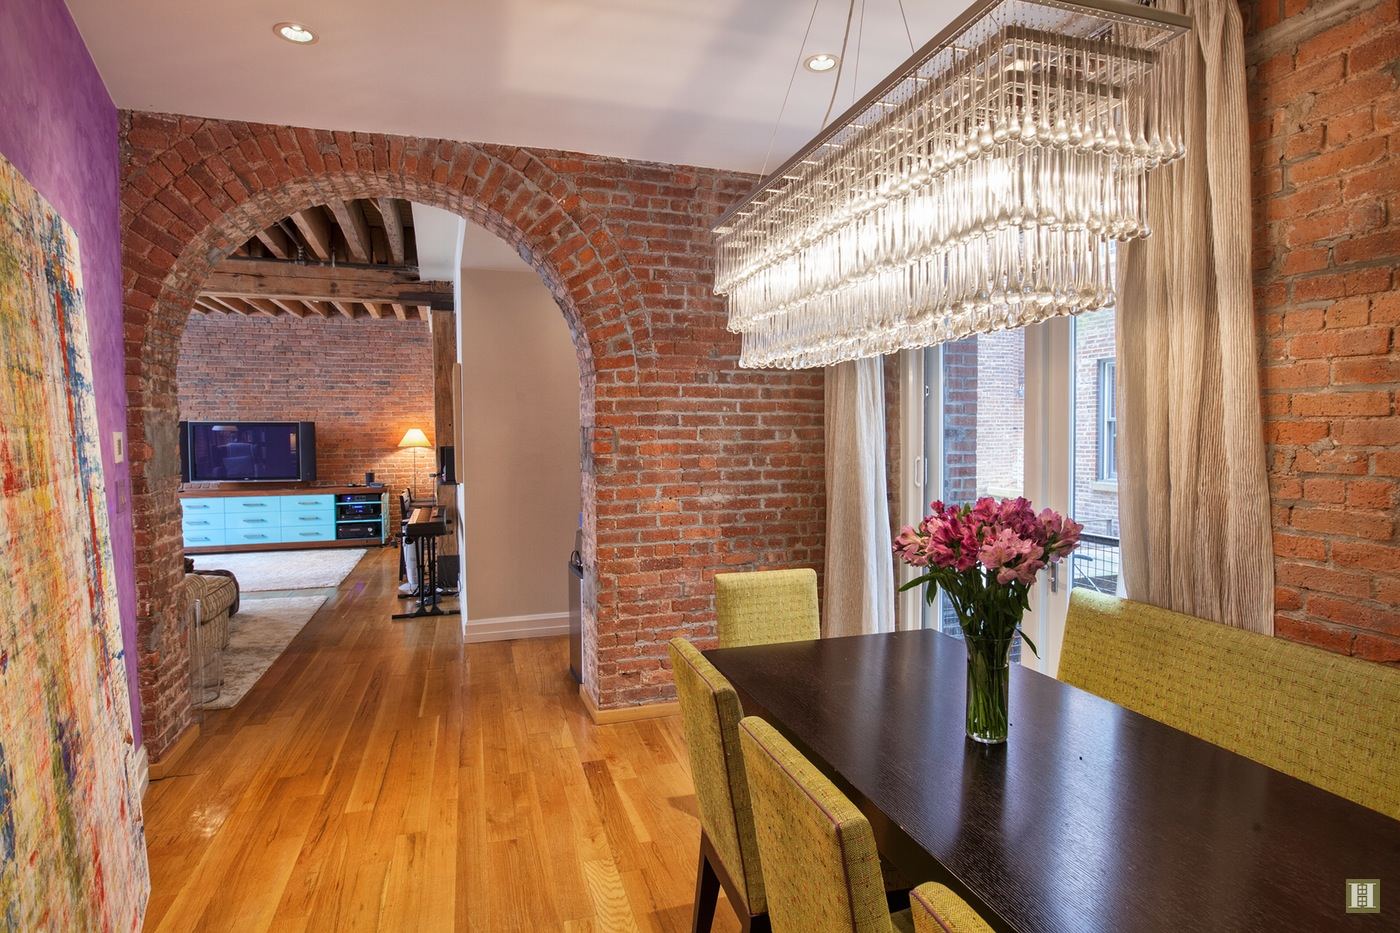 A dramatic brick archway leads from the dining room into the living room.